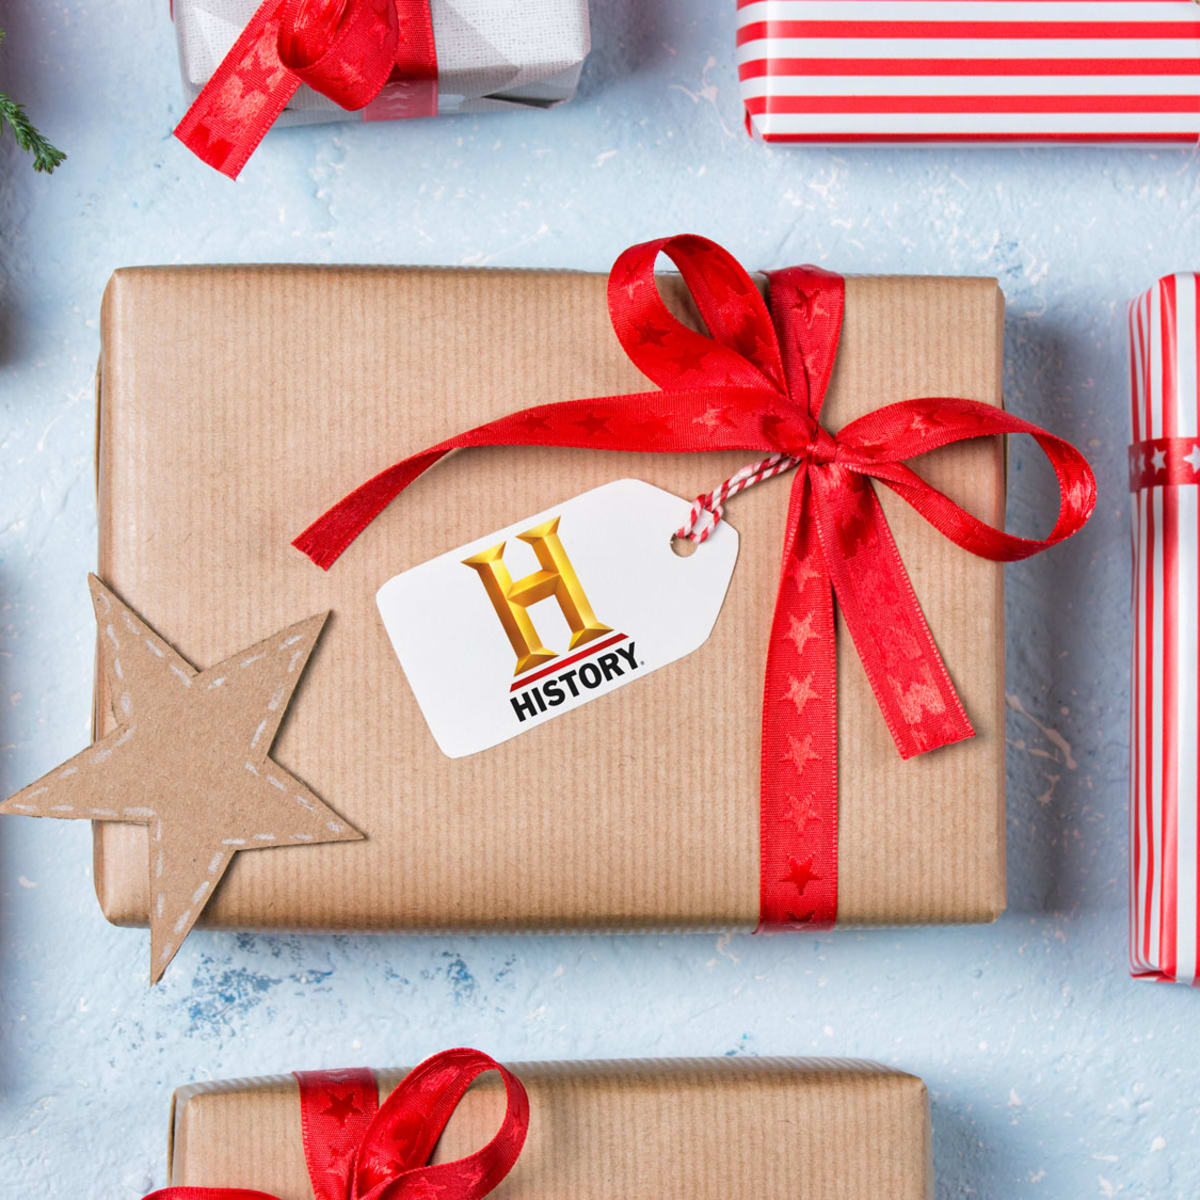 Best Gifts for History Buffs - HISTORY